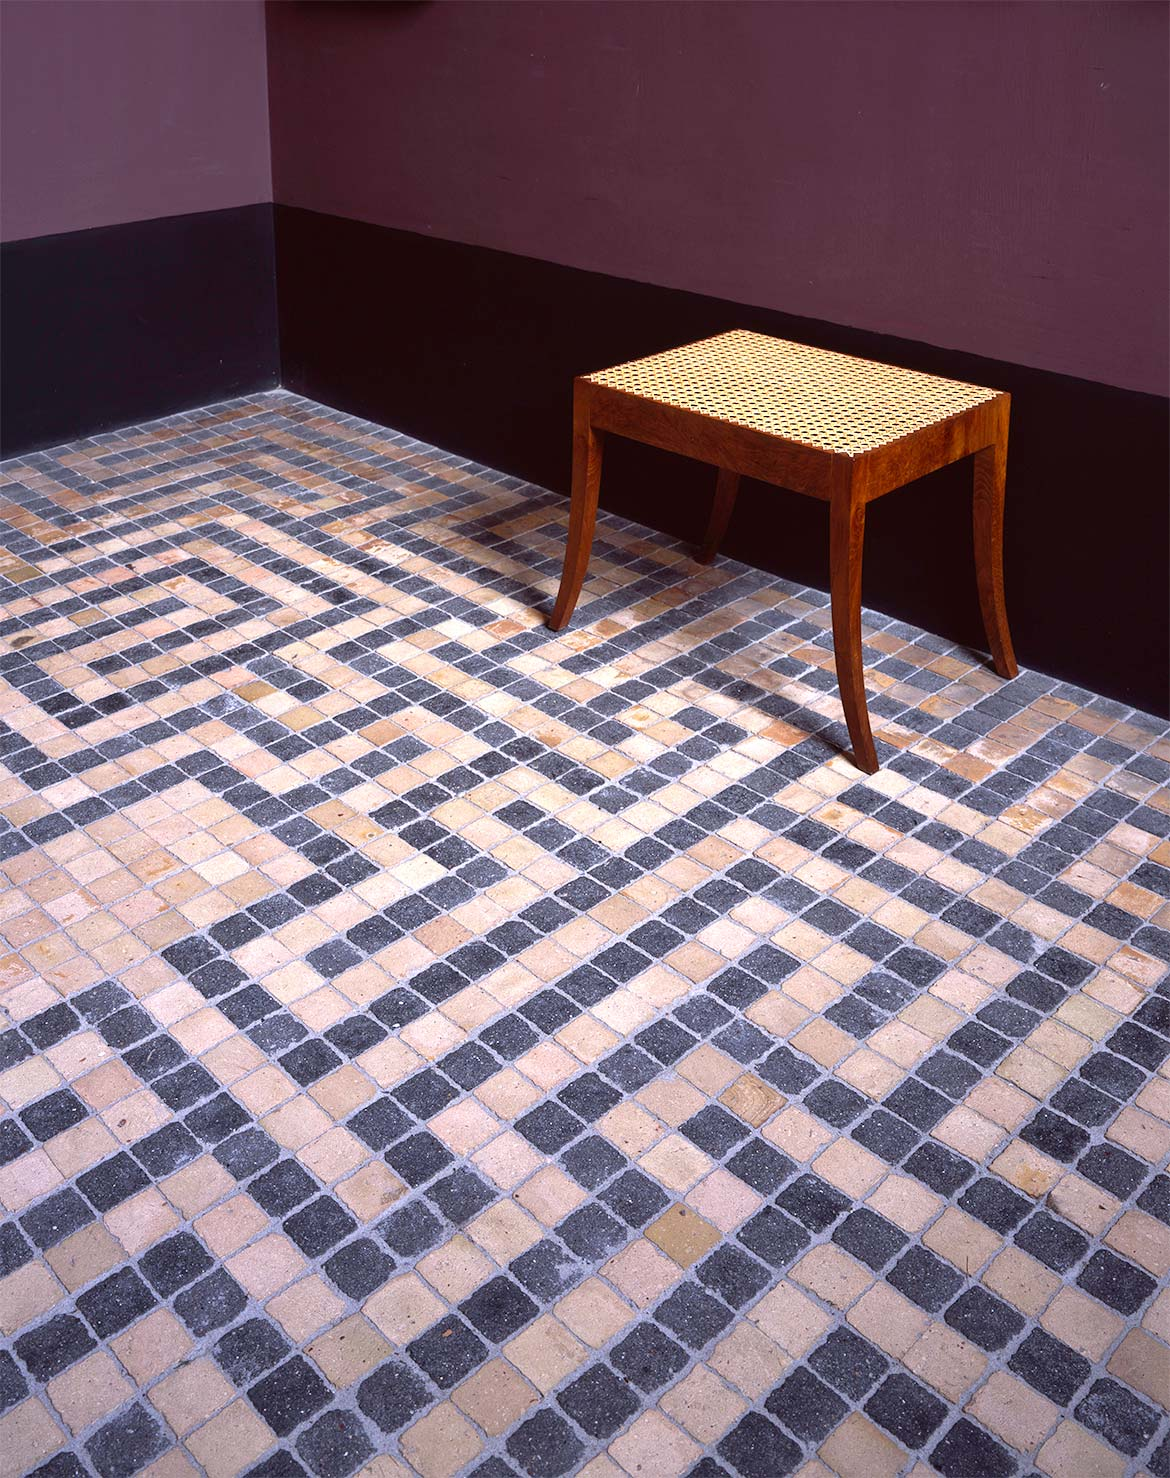 Floor mosaic in gallery bay 6 with stool by Carl Petersen and Kaare Klint.